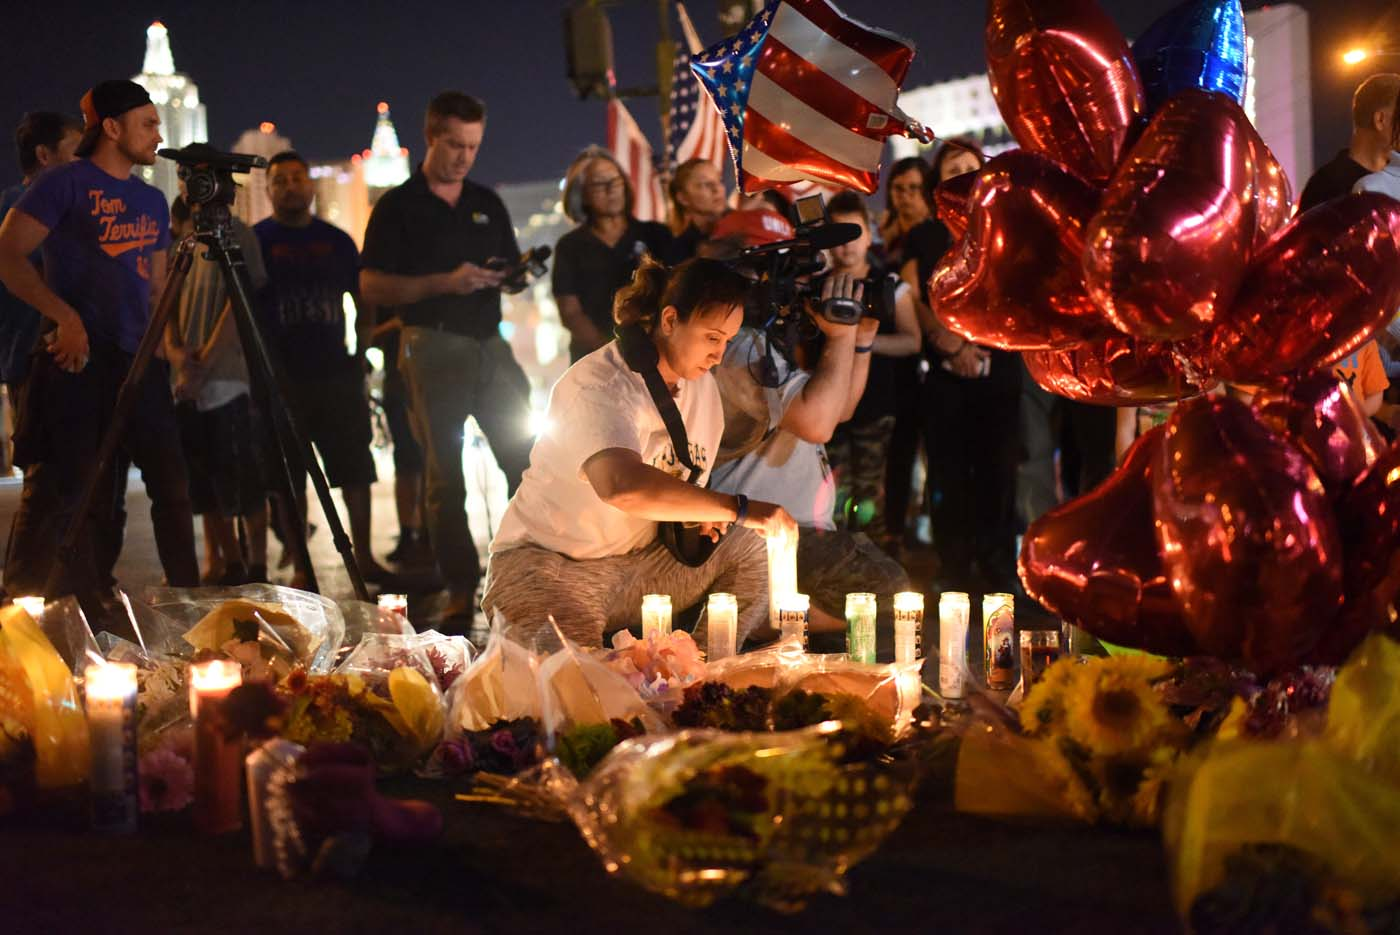 A woman lights a candle at a makeshift memorial near the Mandalay Hotel on the Las Vegas Strip, in Las Vegas, Nevada on October 3, 2017, after a gunman killed 58 people and wounded more than 500 others, before taking his own life, when he opened fire from a hotel on a country music festival. Police said the gunman, a 64-year-old local resident named as Stephen Paddock, had been killed after a SWAT team responded to reports of multiple gunfire from the 32nd floor of the Mandalay Bay, a hotel-casino next to the concert venue. / AFP PHOTO / Robyn Beck